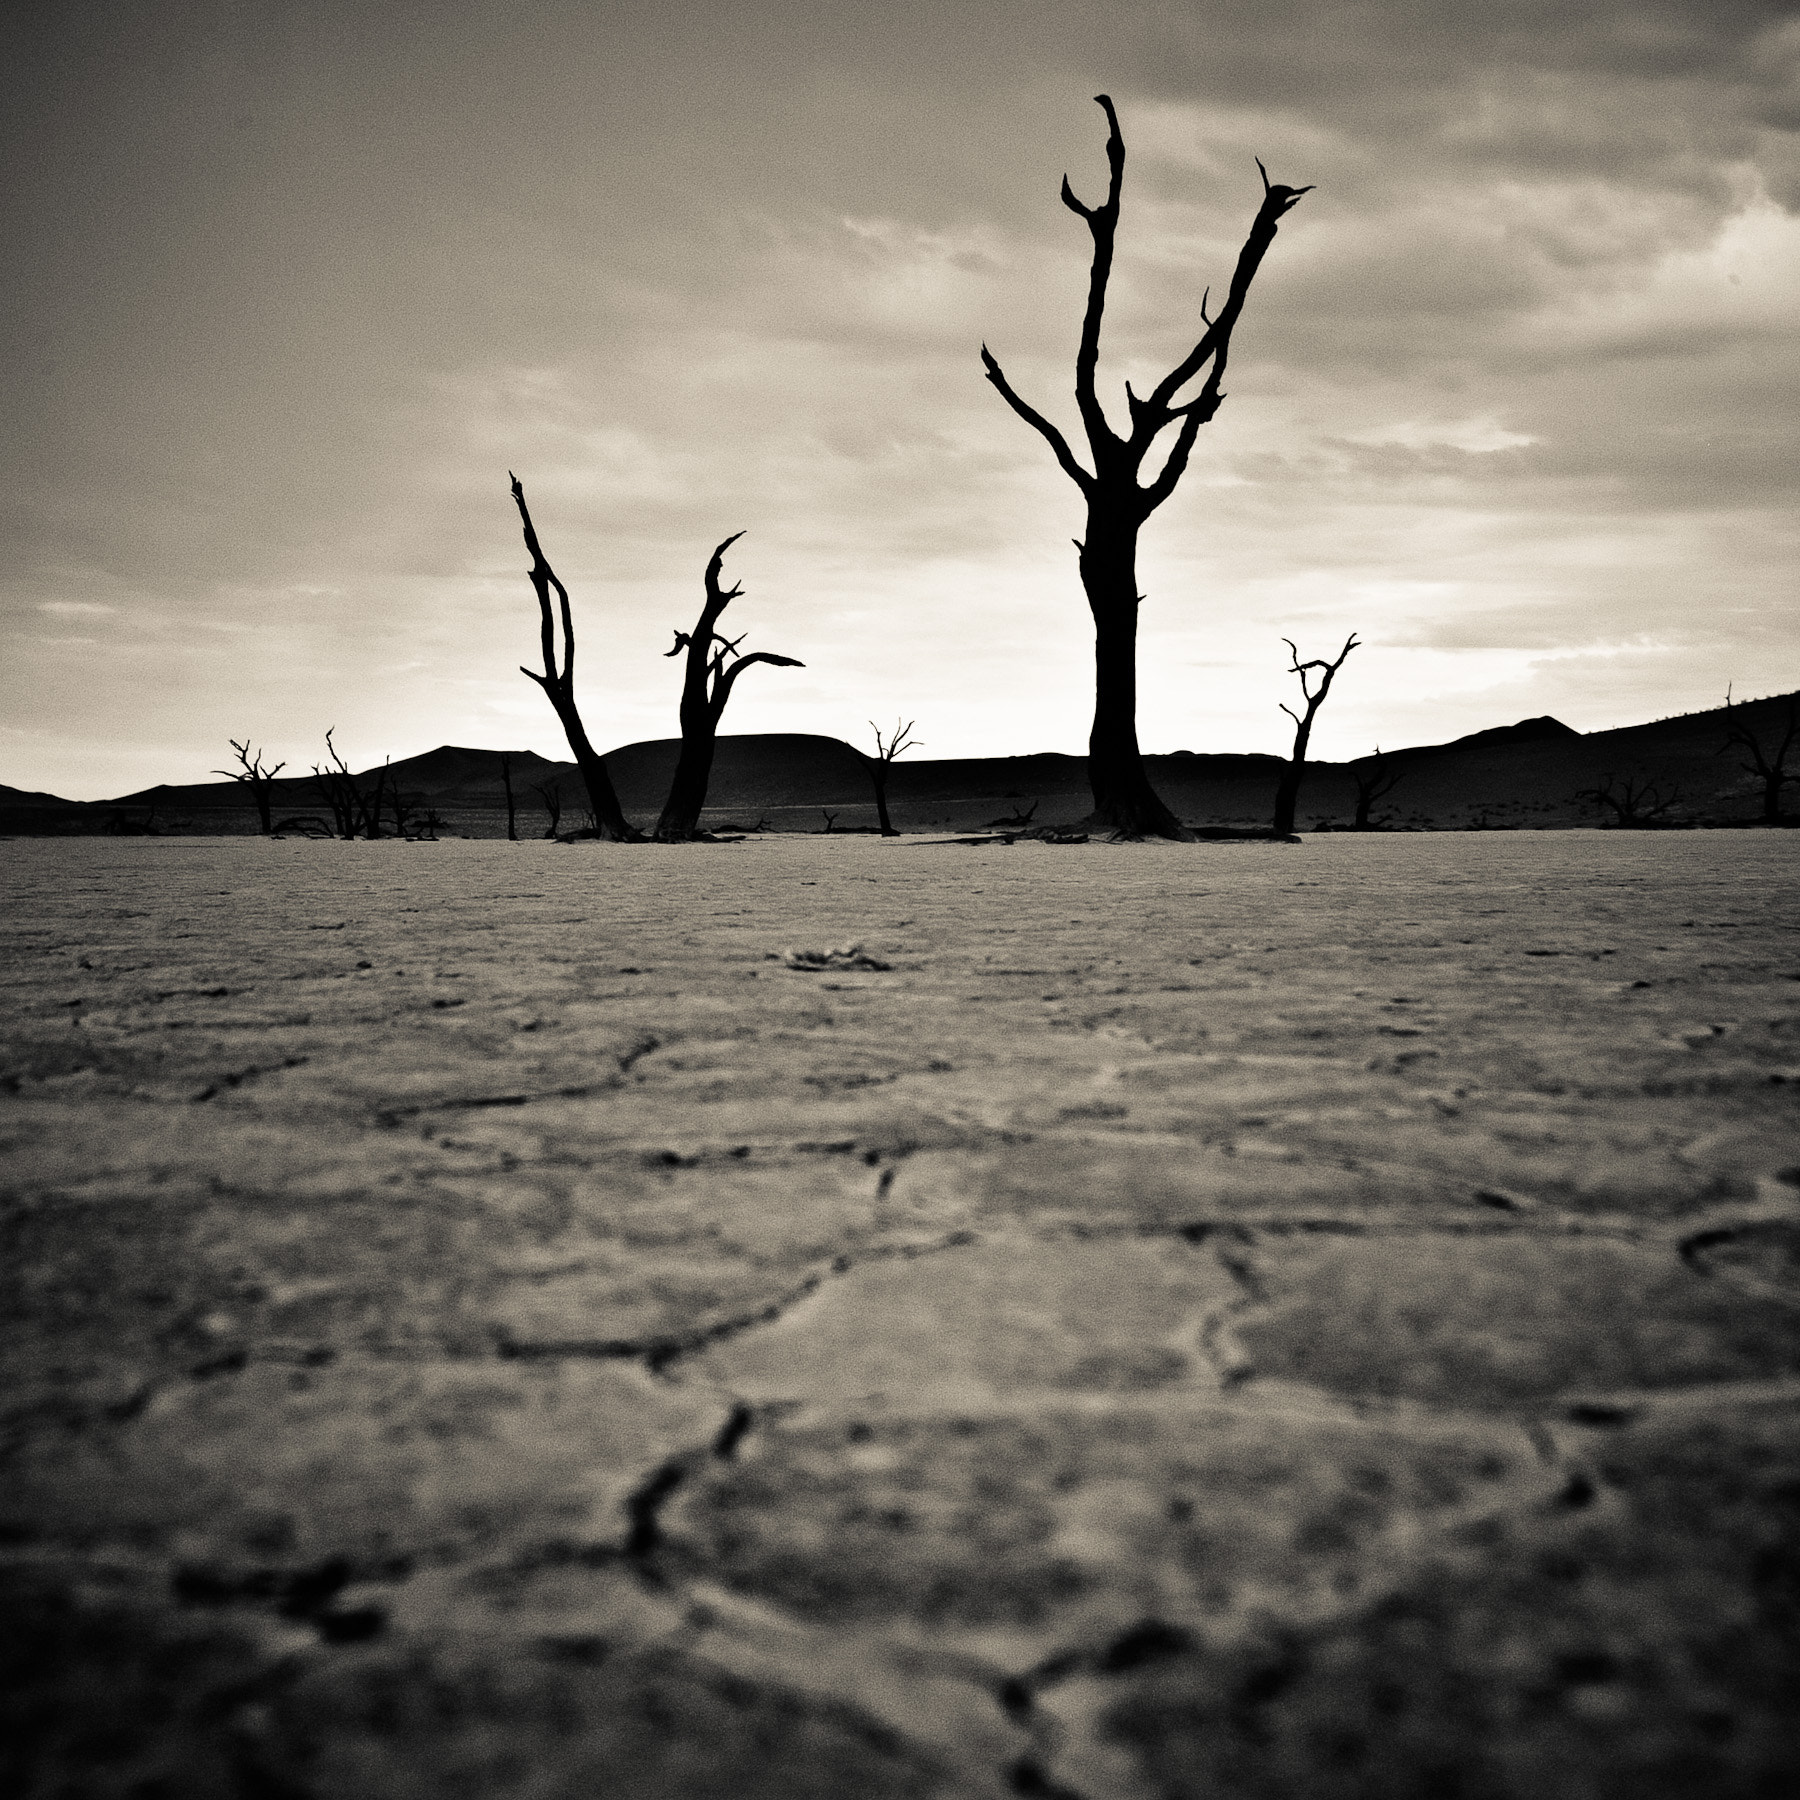 Photograph Dry by Gorazd Golob on 500px